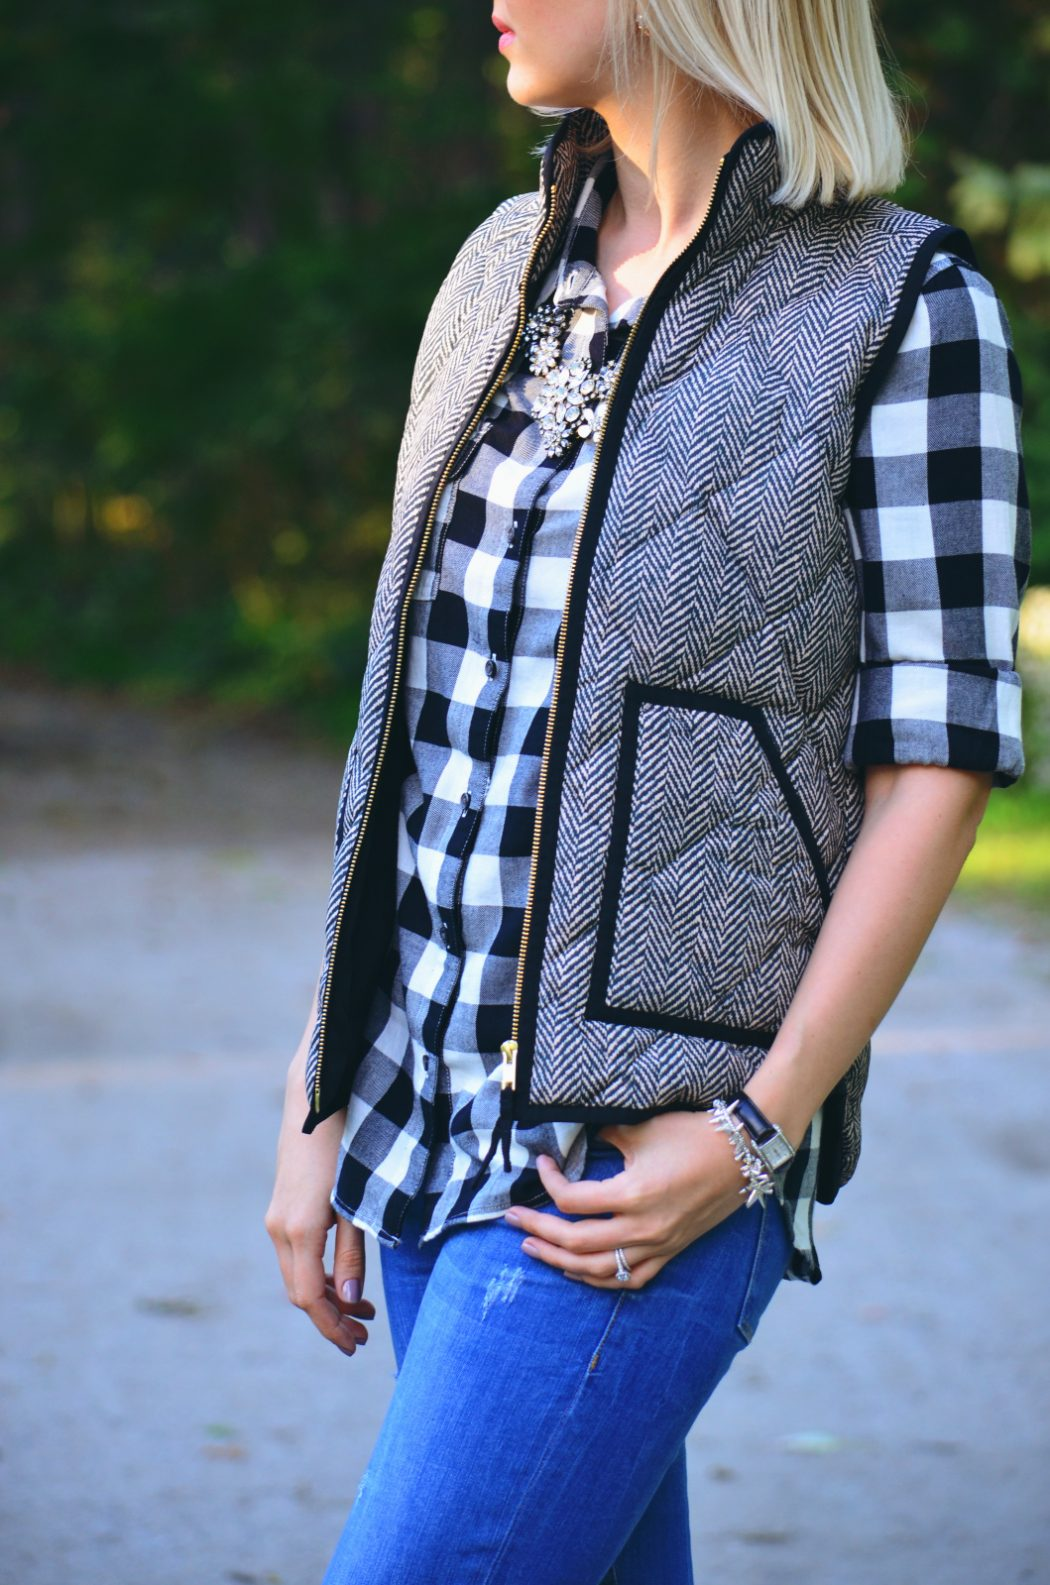 Puffy-vest3 8 Main Winter & Fall Jackets & Coats Trends in 2020